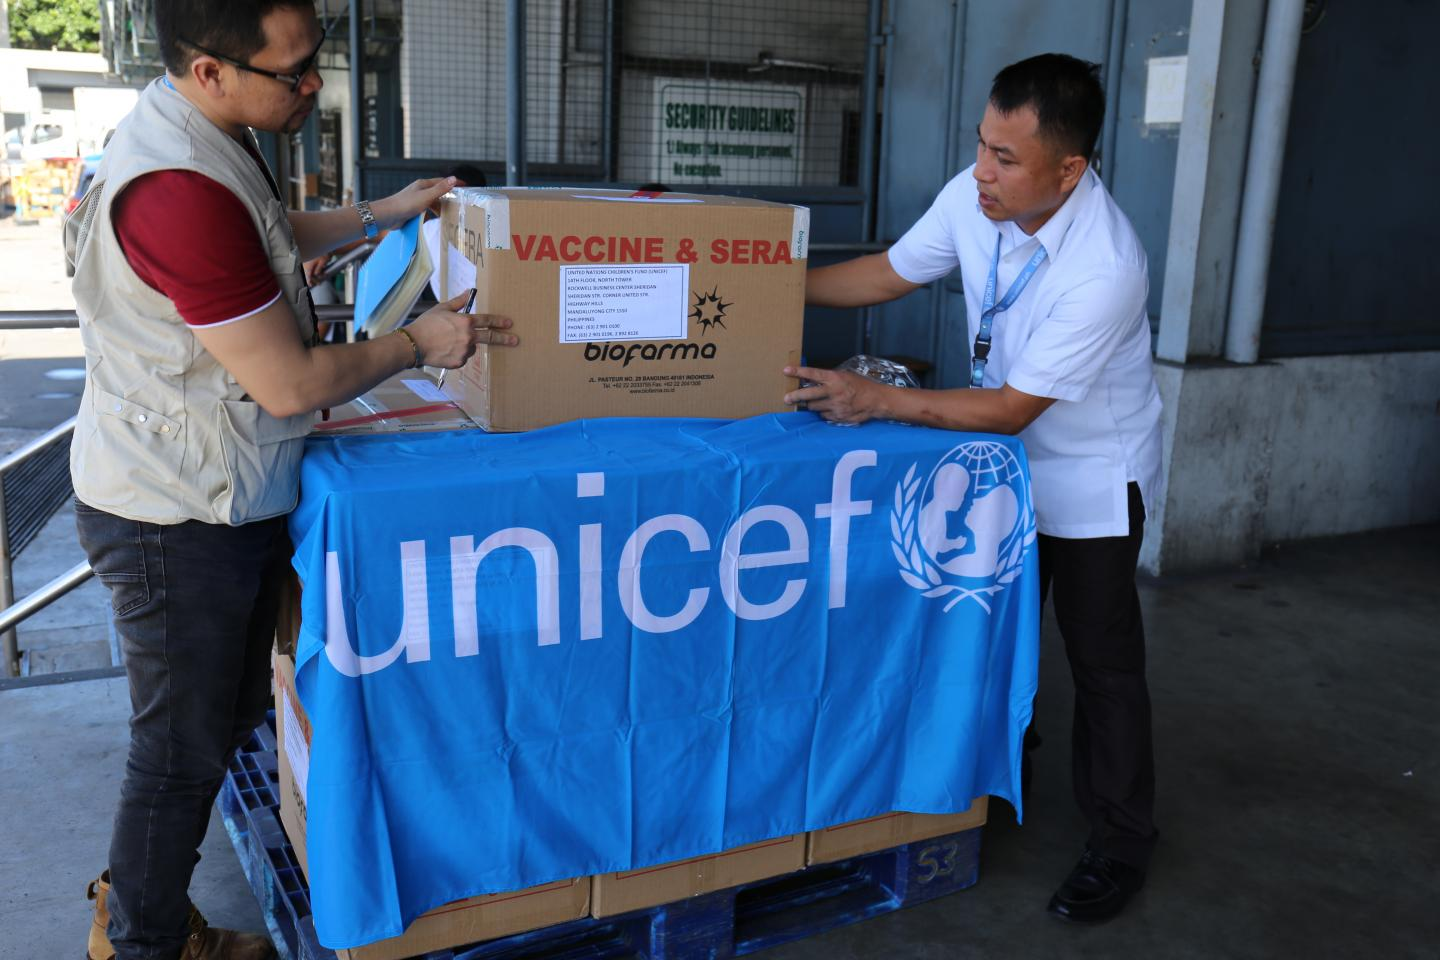 UNICEF staff inspect boxes of polio vaccines